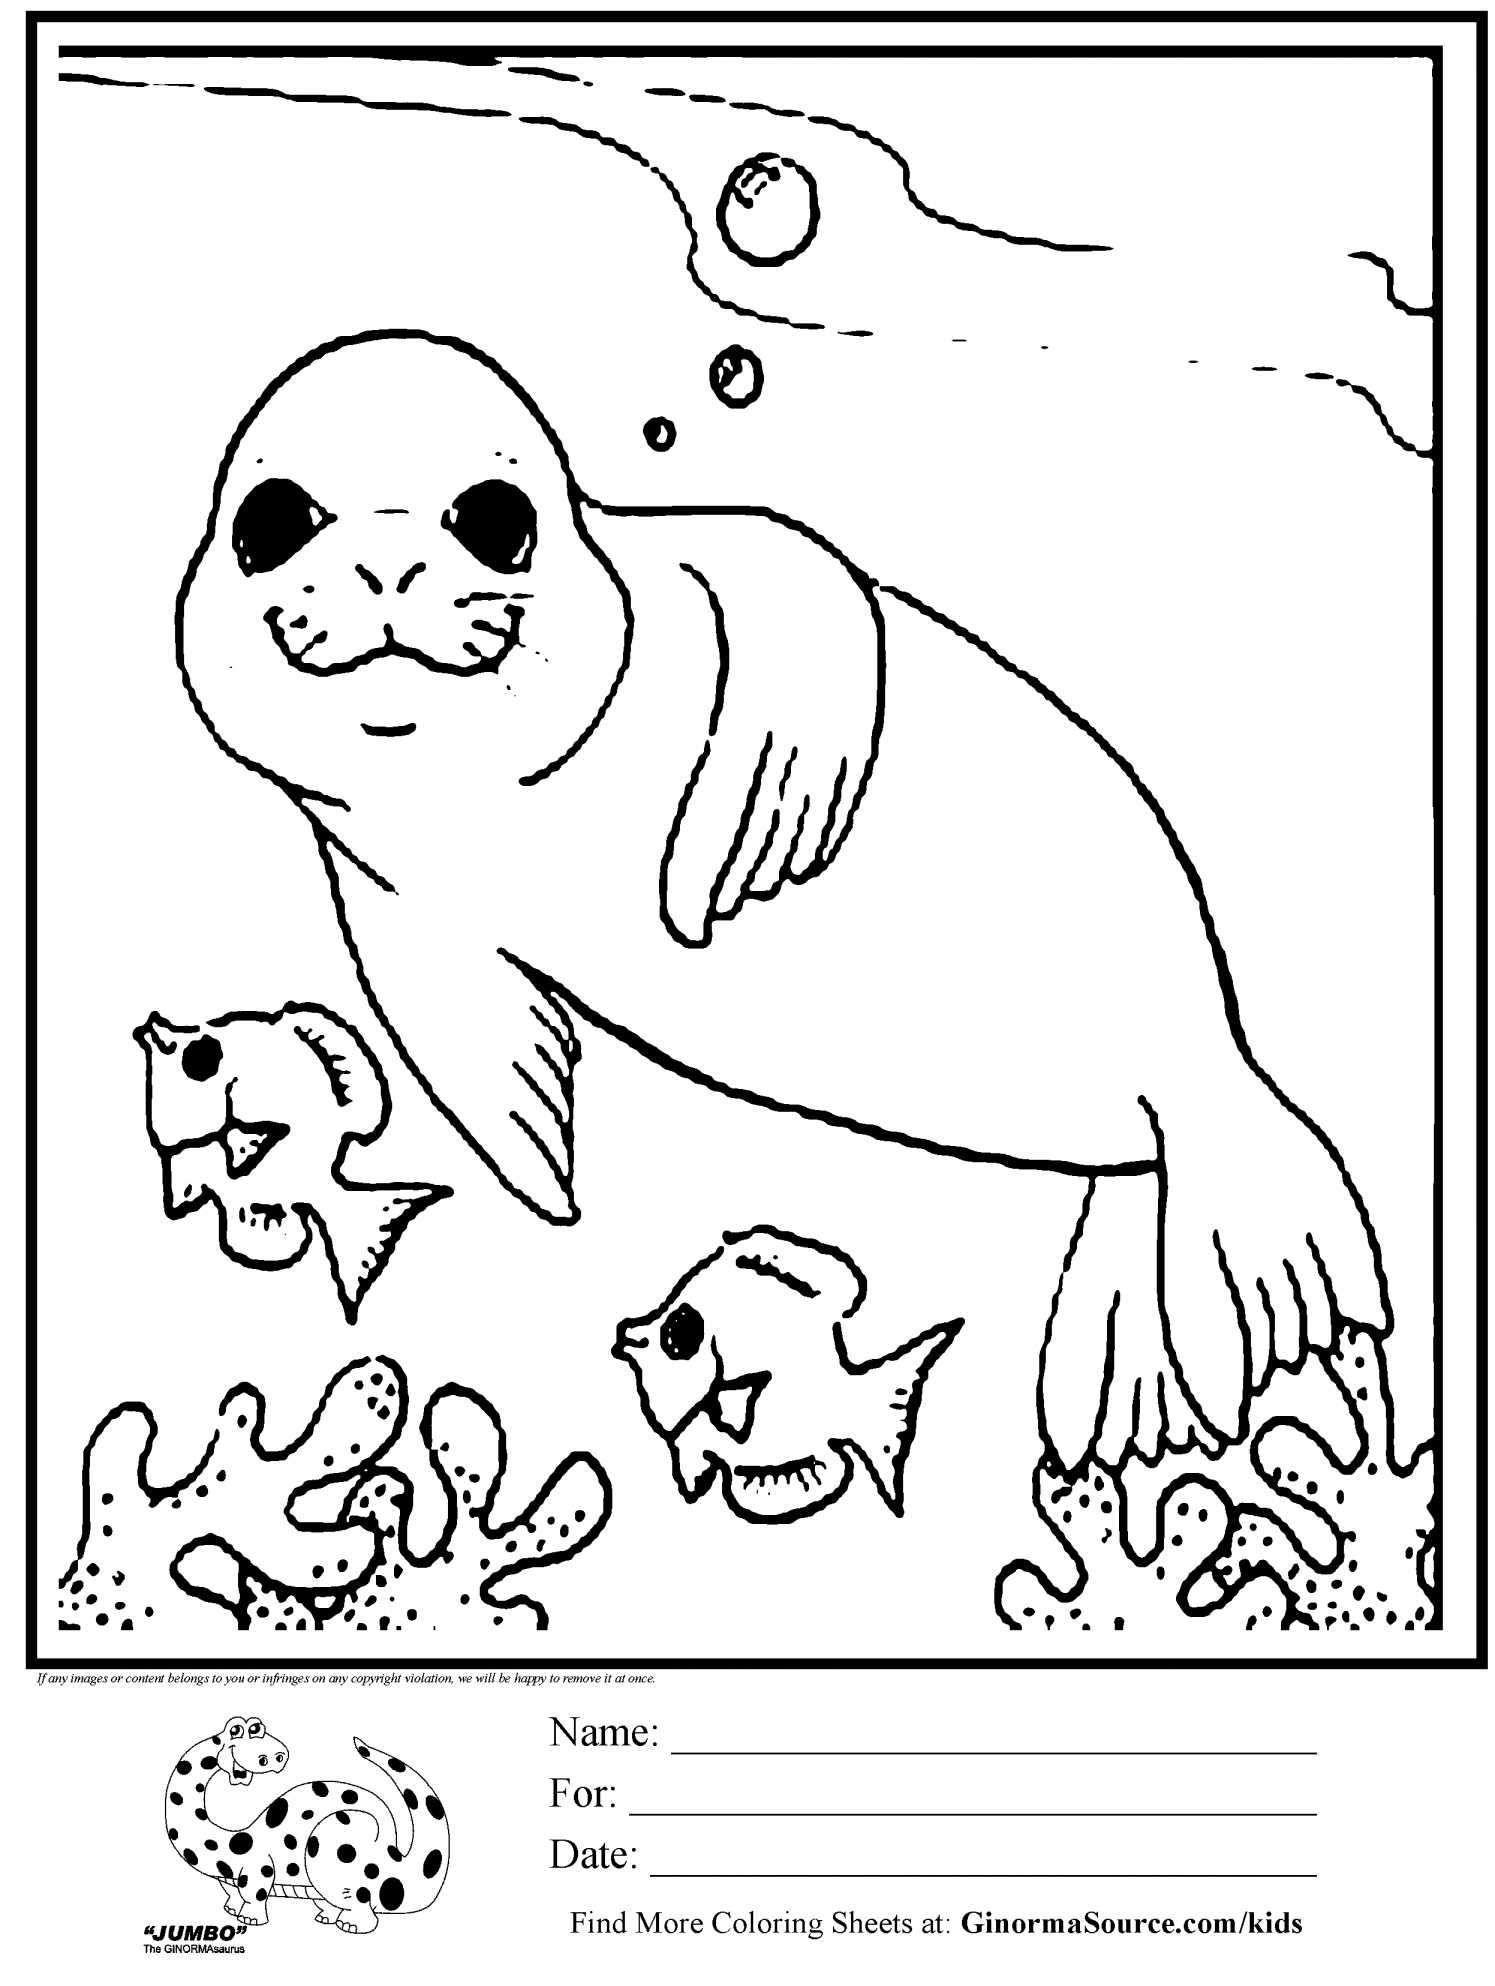 26 Jesus Coloring Pages For Preschoolers Download Coloring Sheets